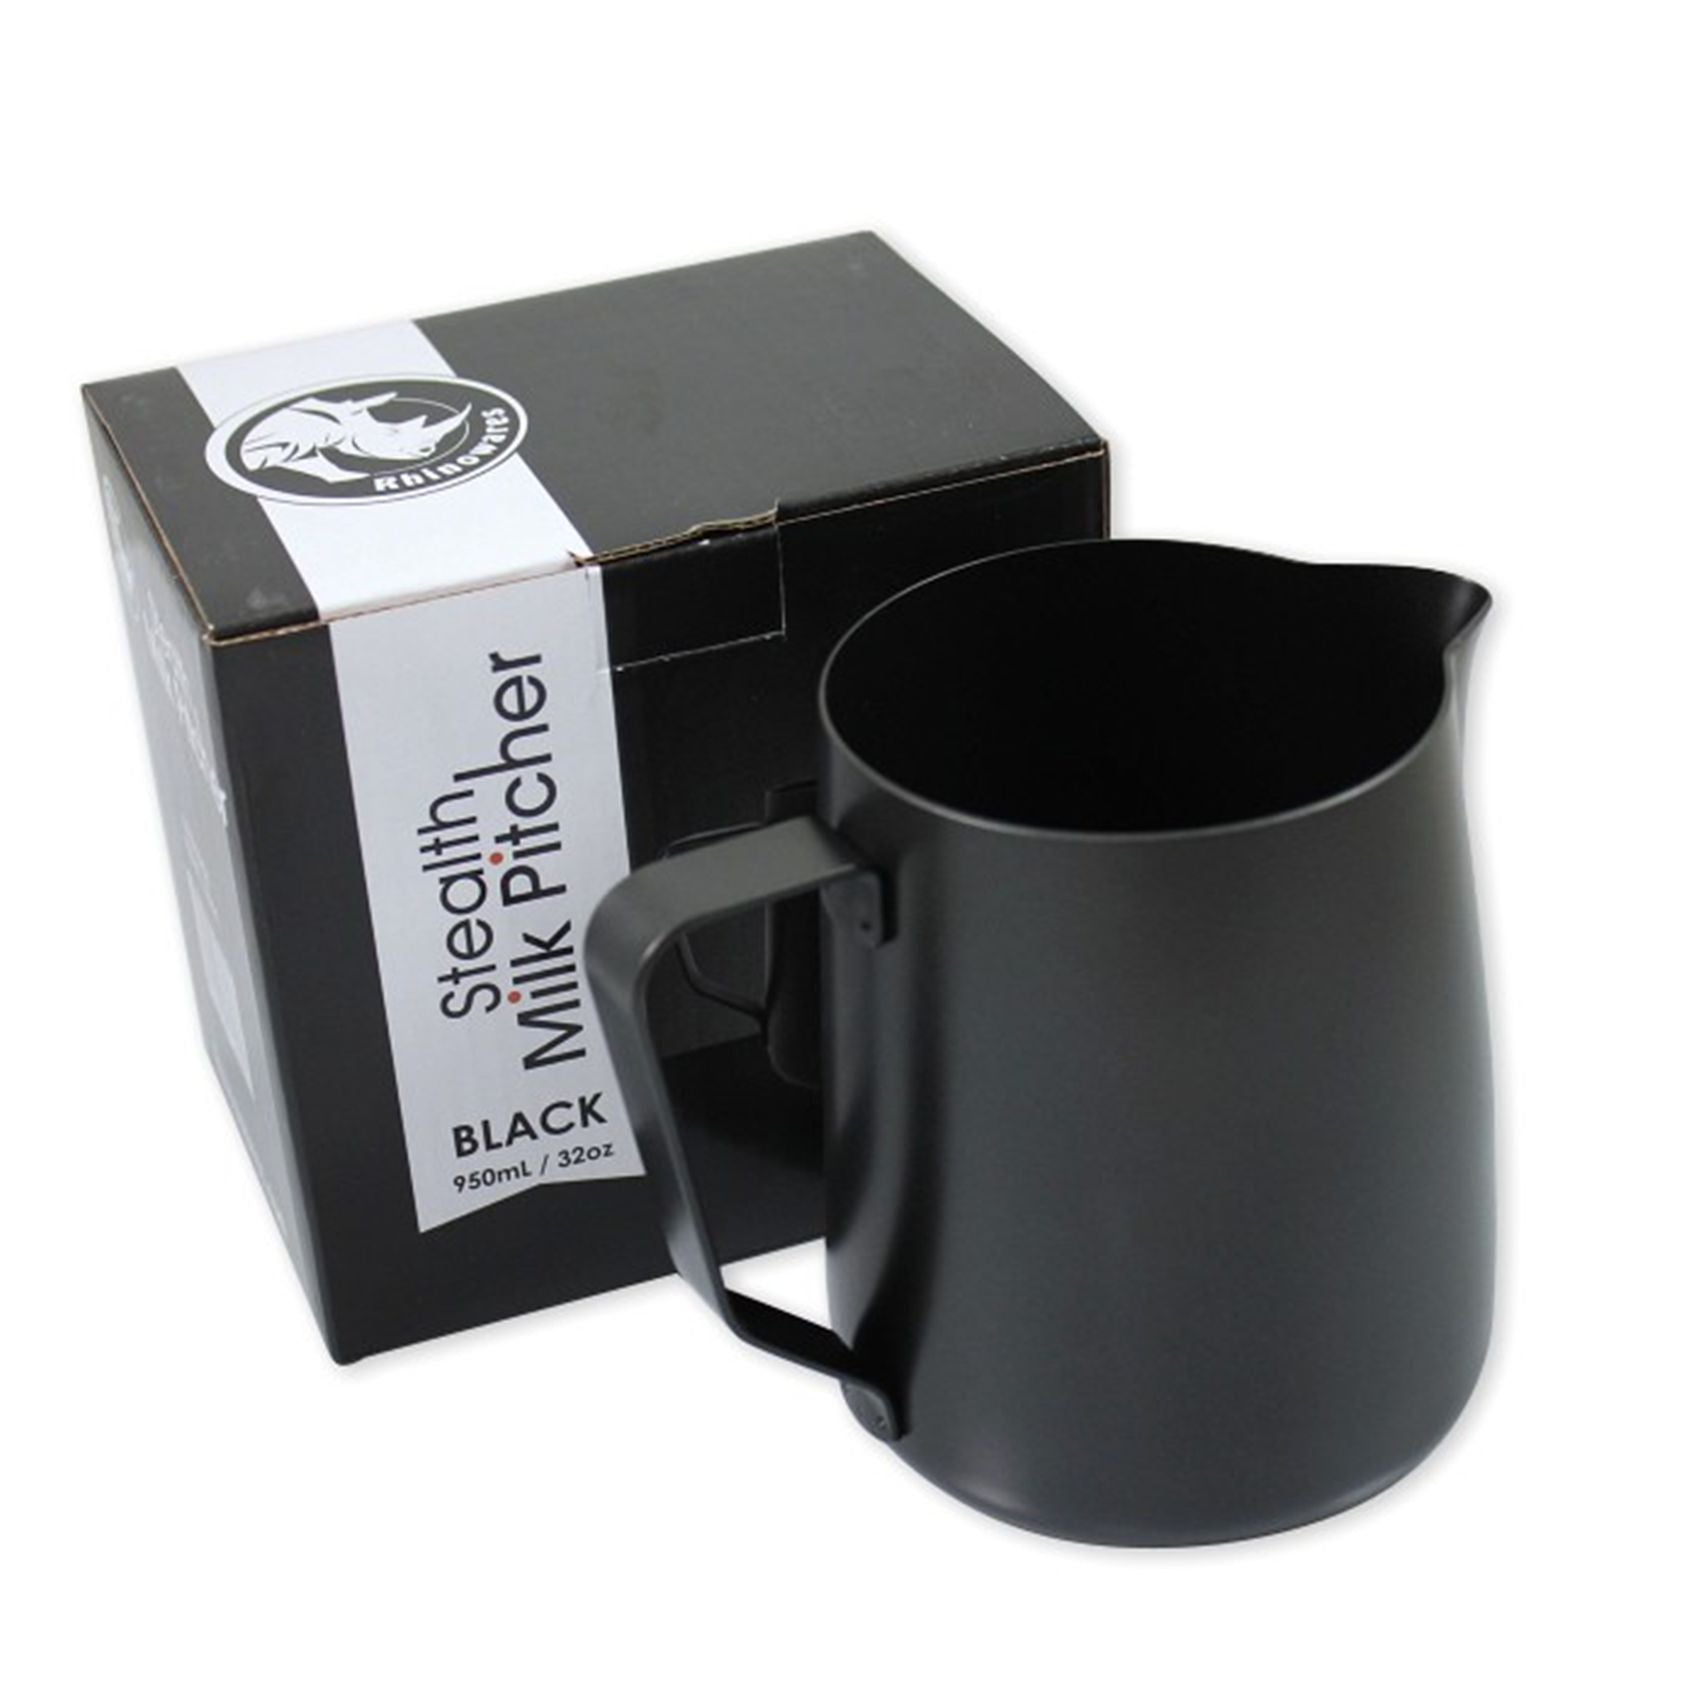 Rhino Stealth Milk Pitcher 950ml